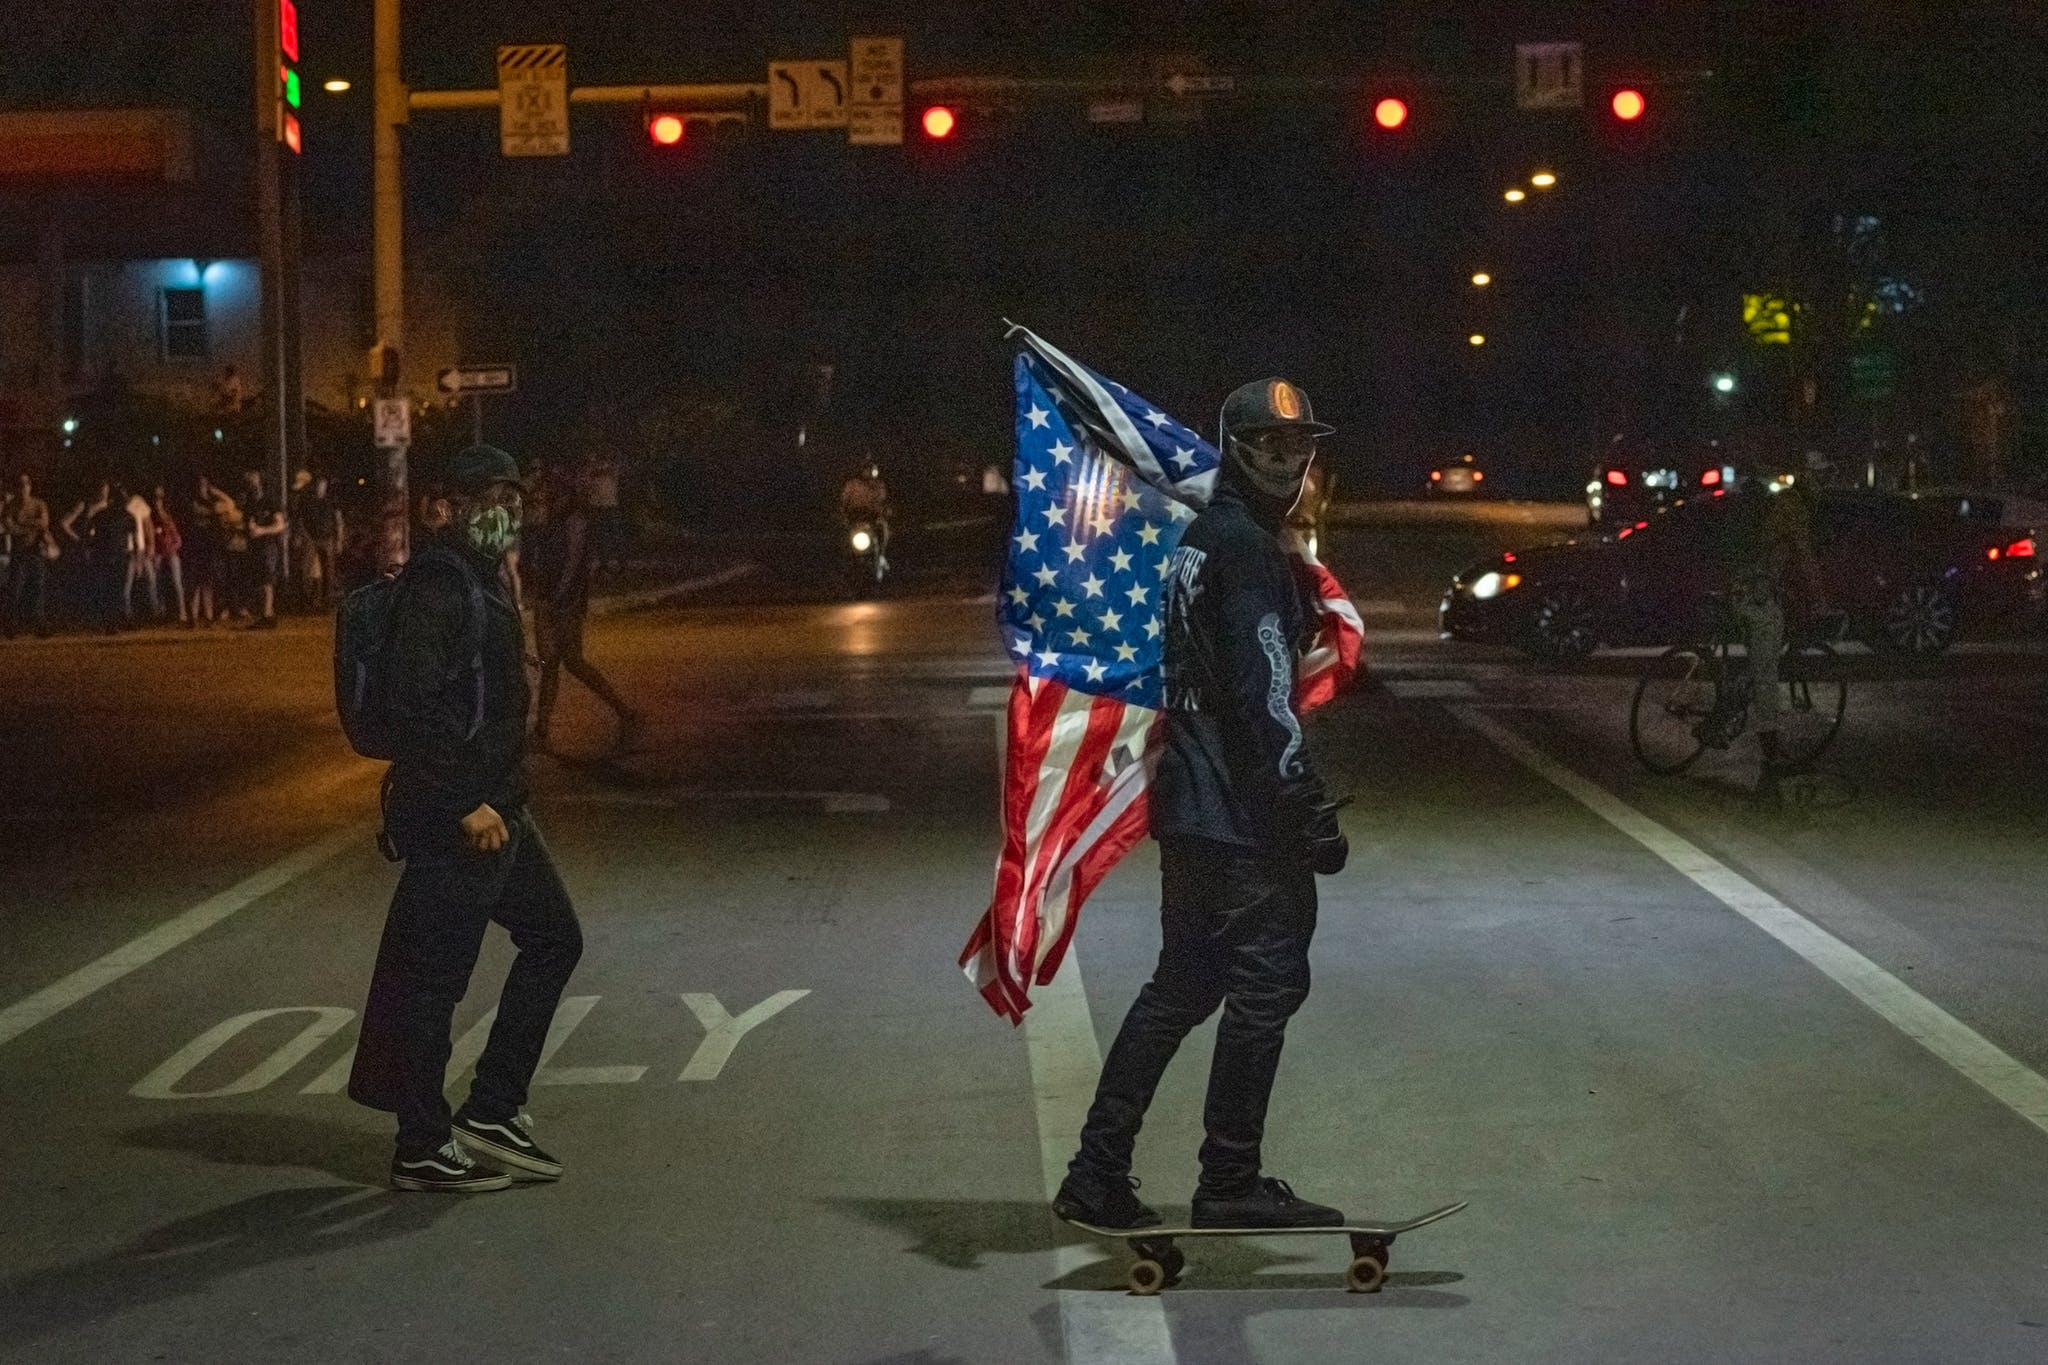 A protester rides a skateboard with an American flag under I-35 at 7th Street in front of police headquarters in Austin on May 30, 2020.